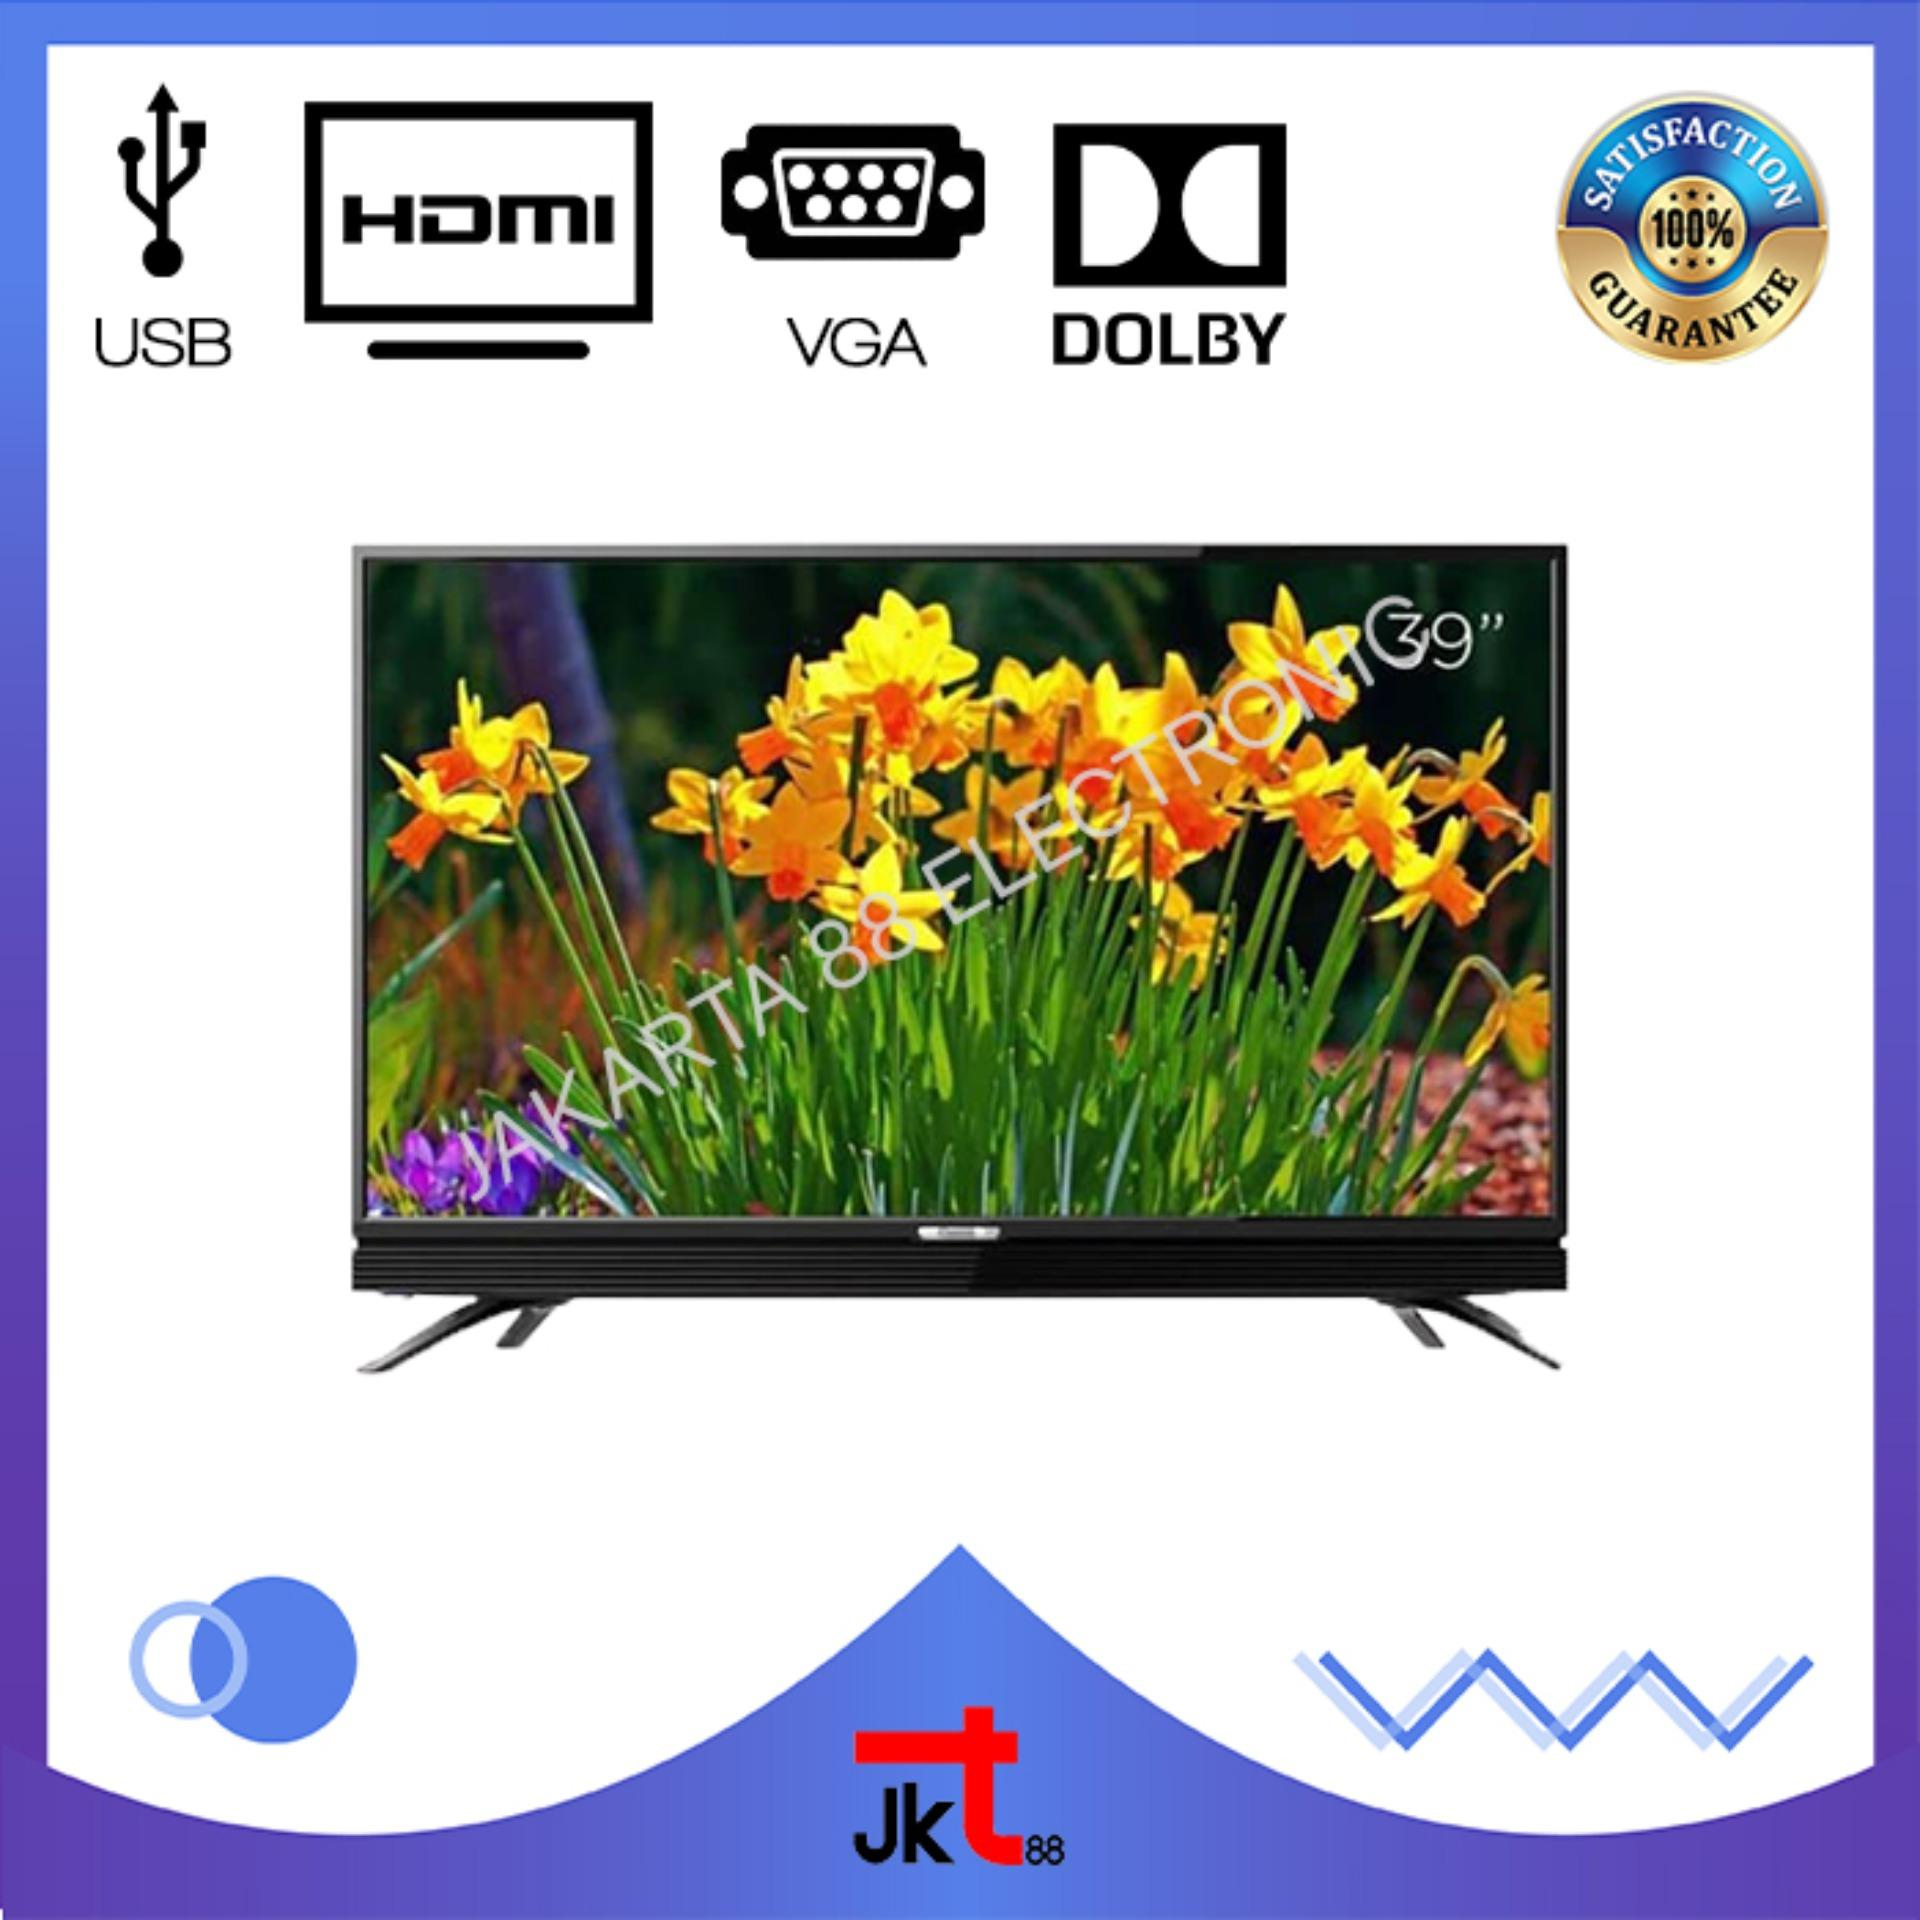 COOCAA LED TV 39 INCH USB MOVIE HDMI VGA 39W3